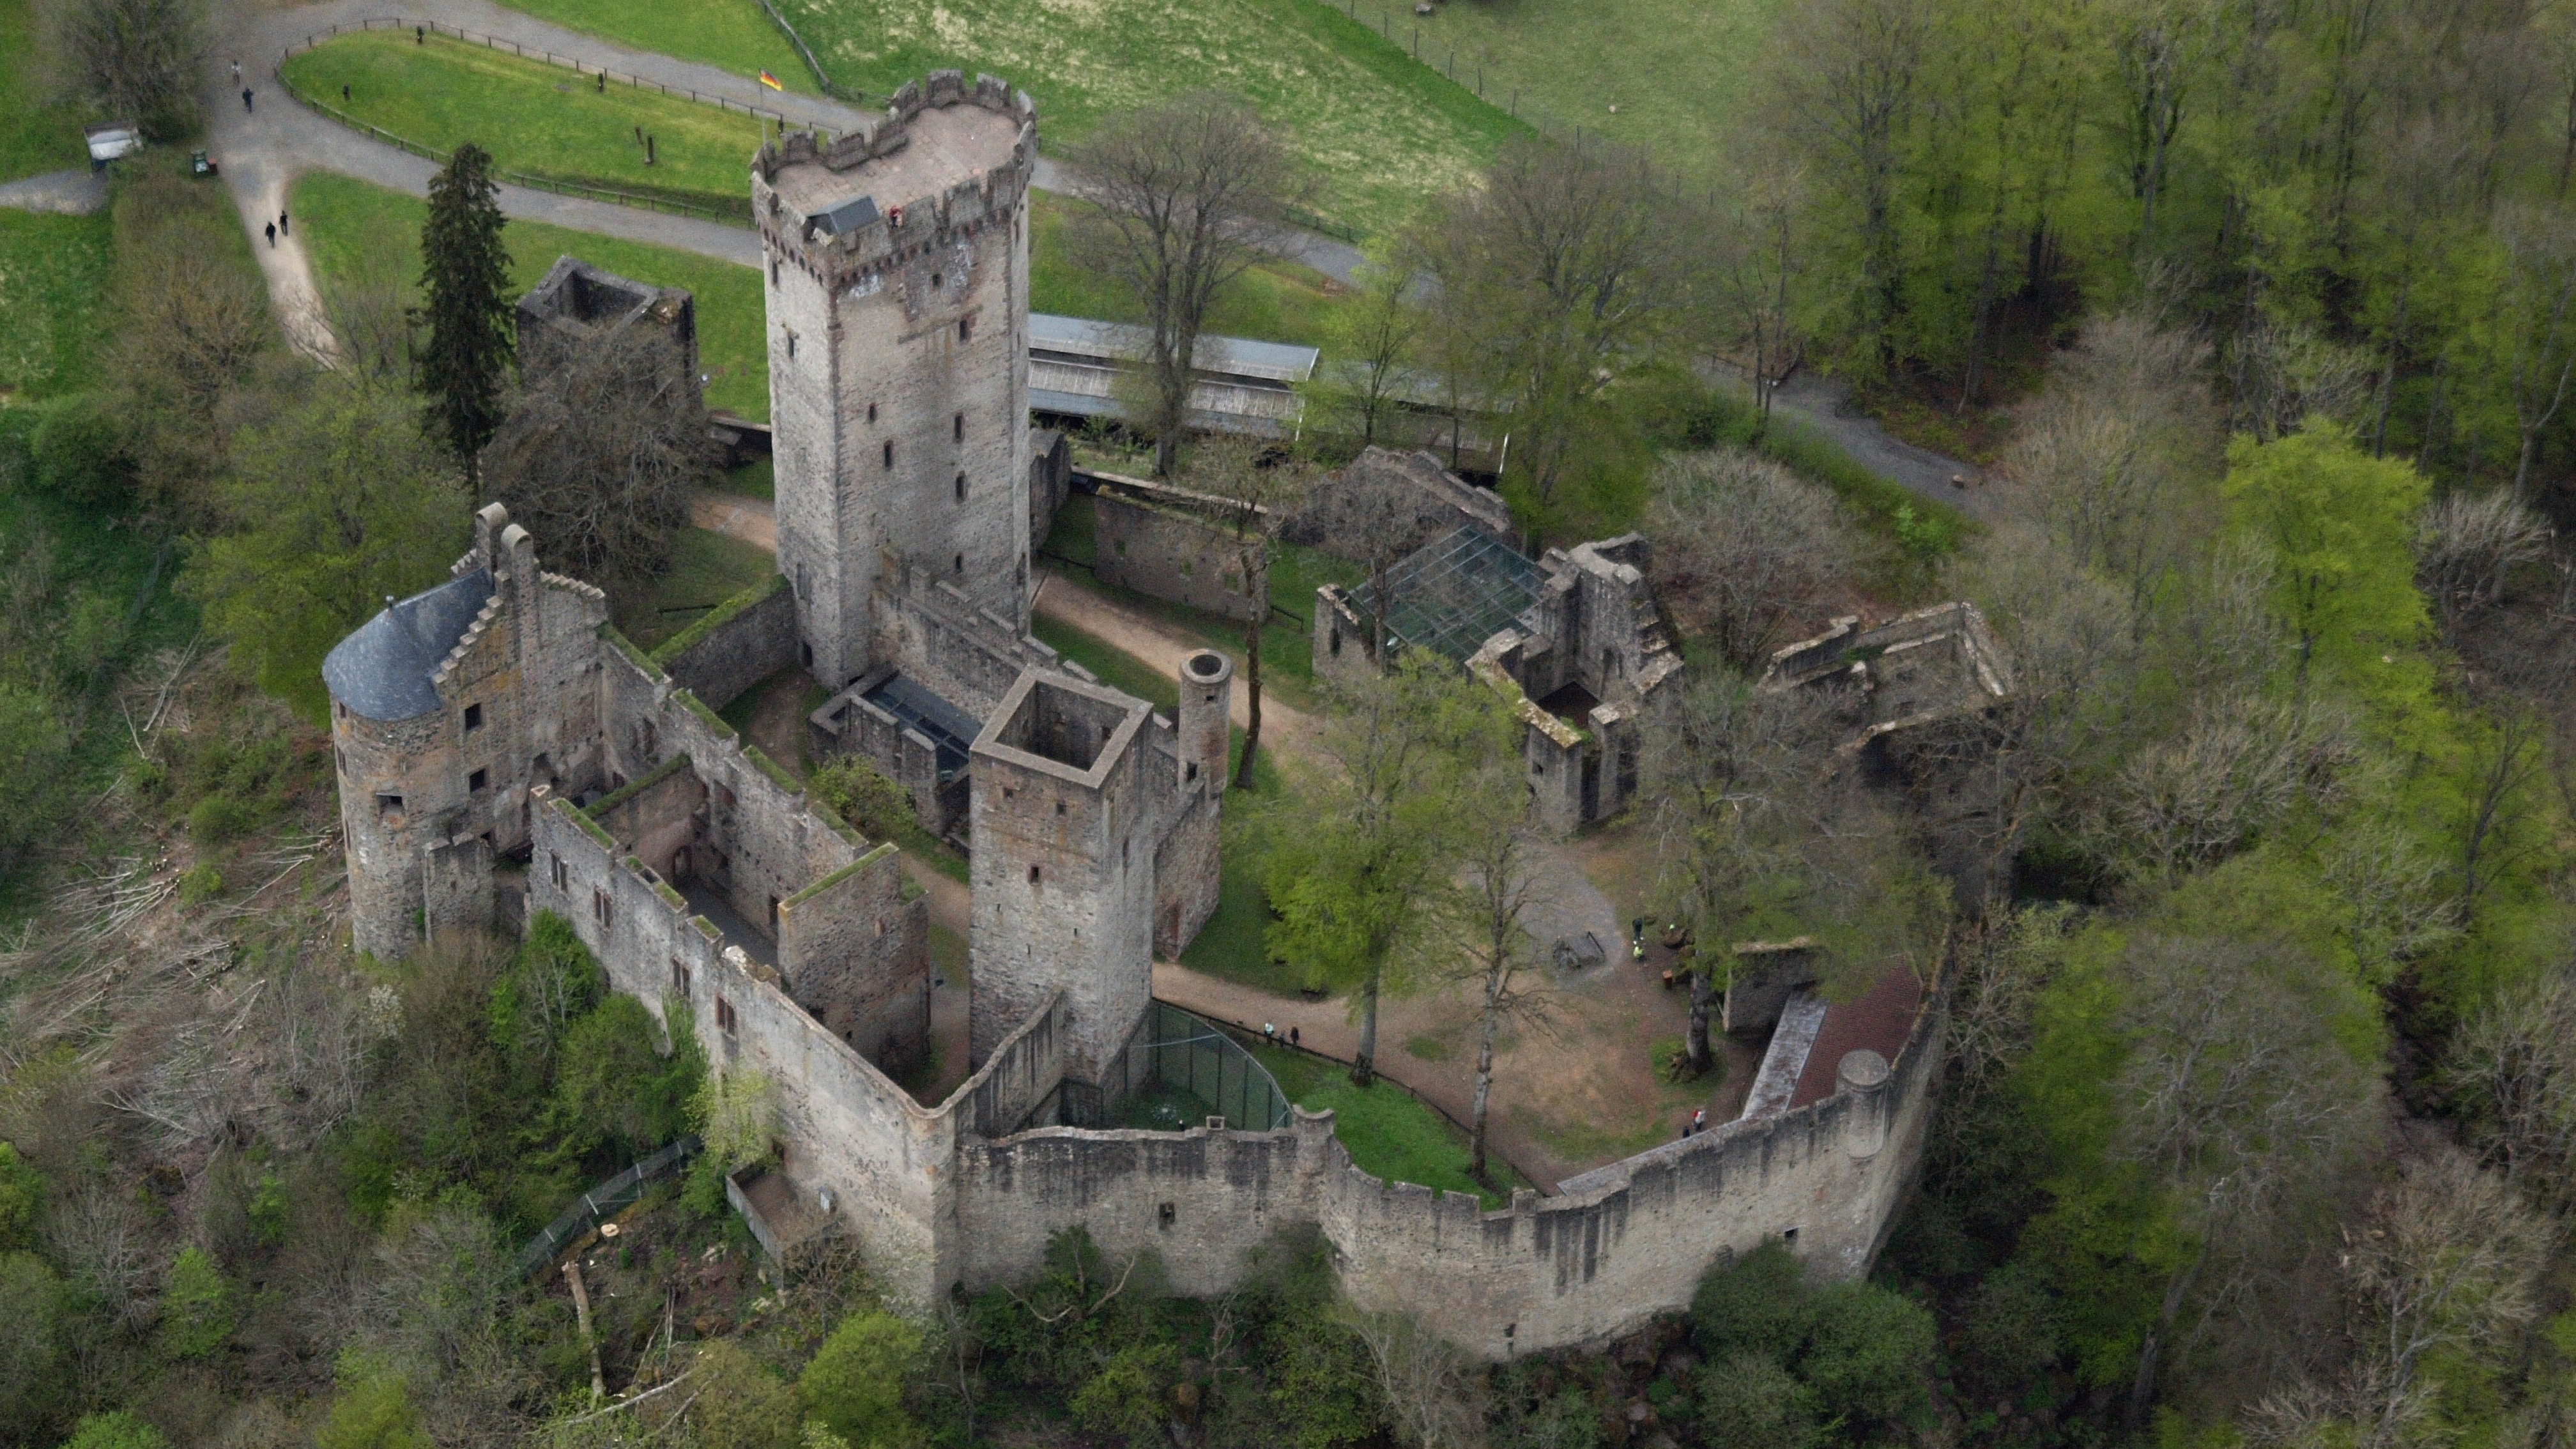 yukle 4032x2268 kasselburg in pelm germany sygic travelthe kasselburg is a ruined hill castle on a 490 metre high basalt massif in